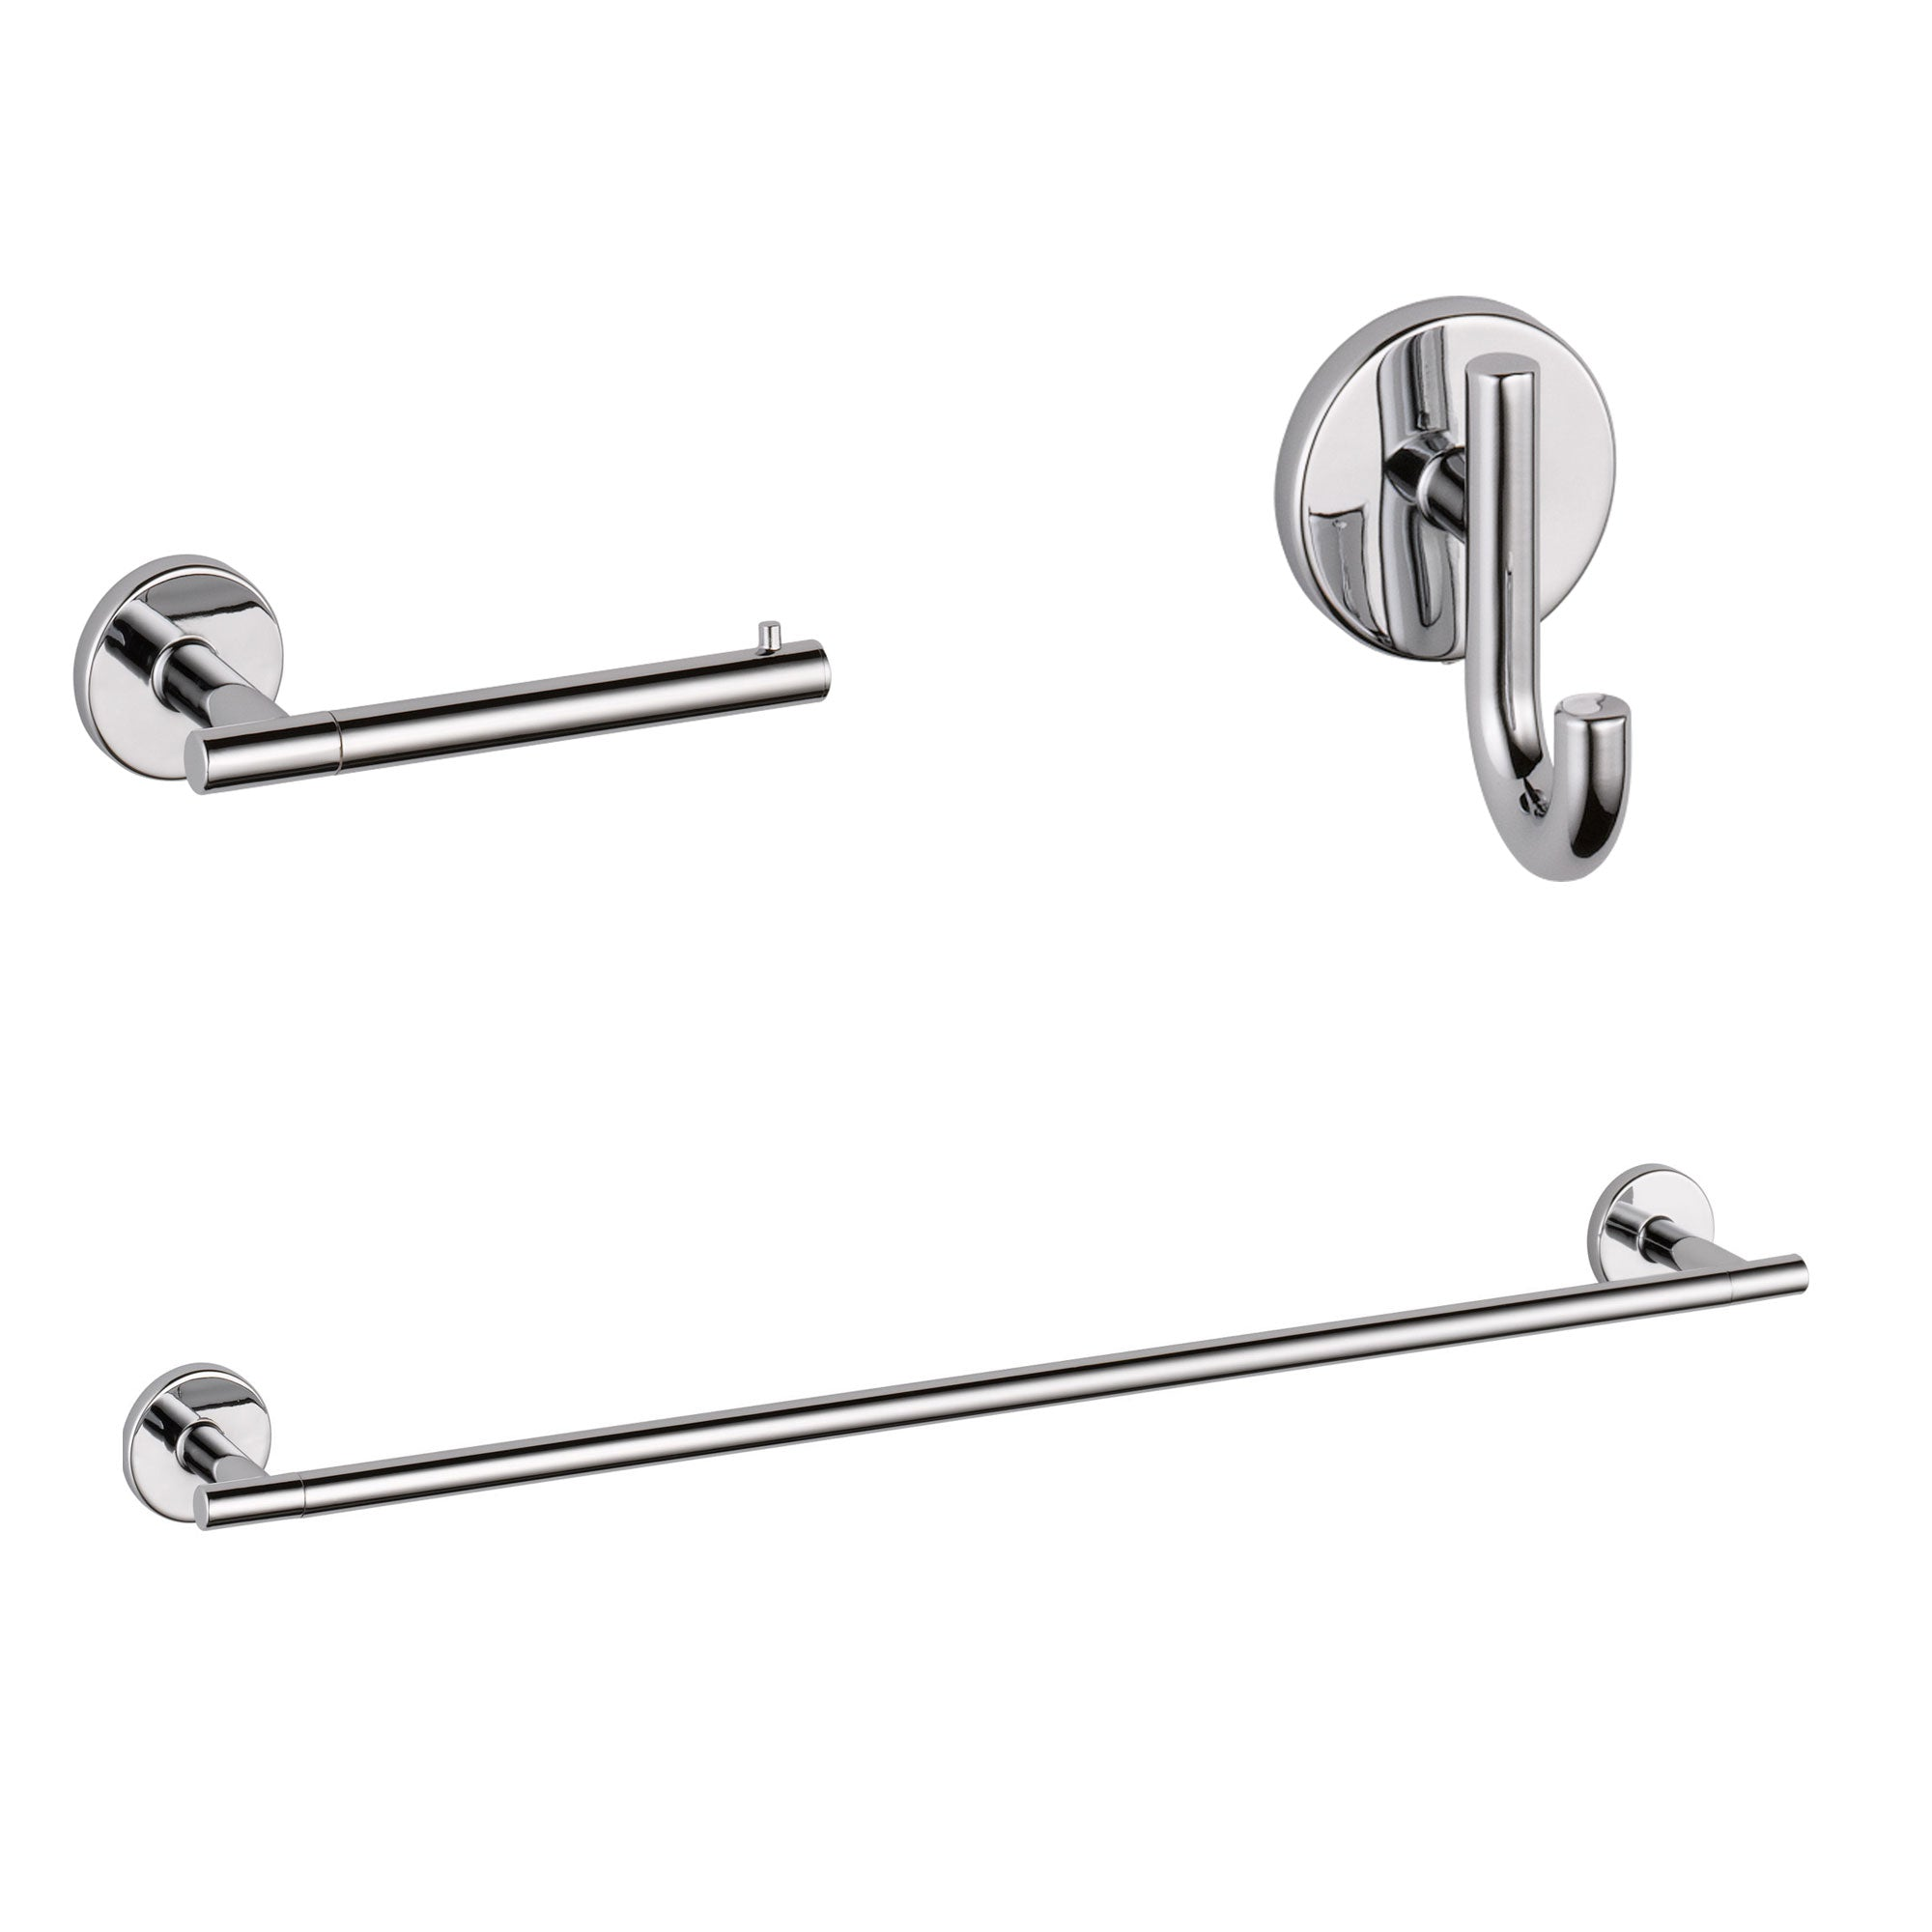 "Delta Trinsic Chrome BASICS Bathroom Accessory Set Includes: 24"" Towel Bar, Toilet Paper Holder, and Robe Hook D10001AP"